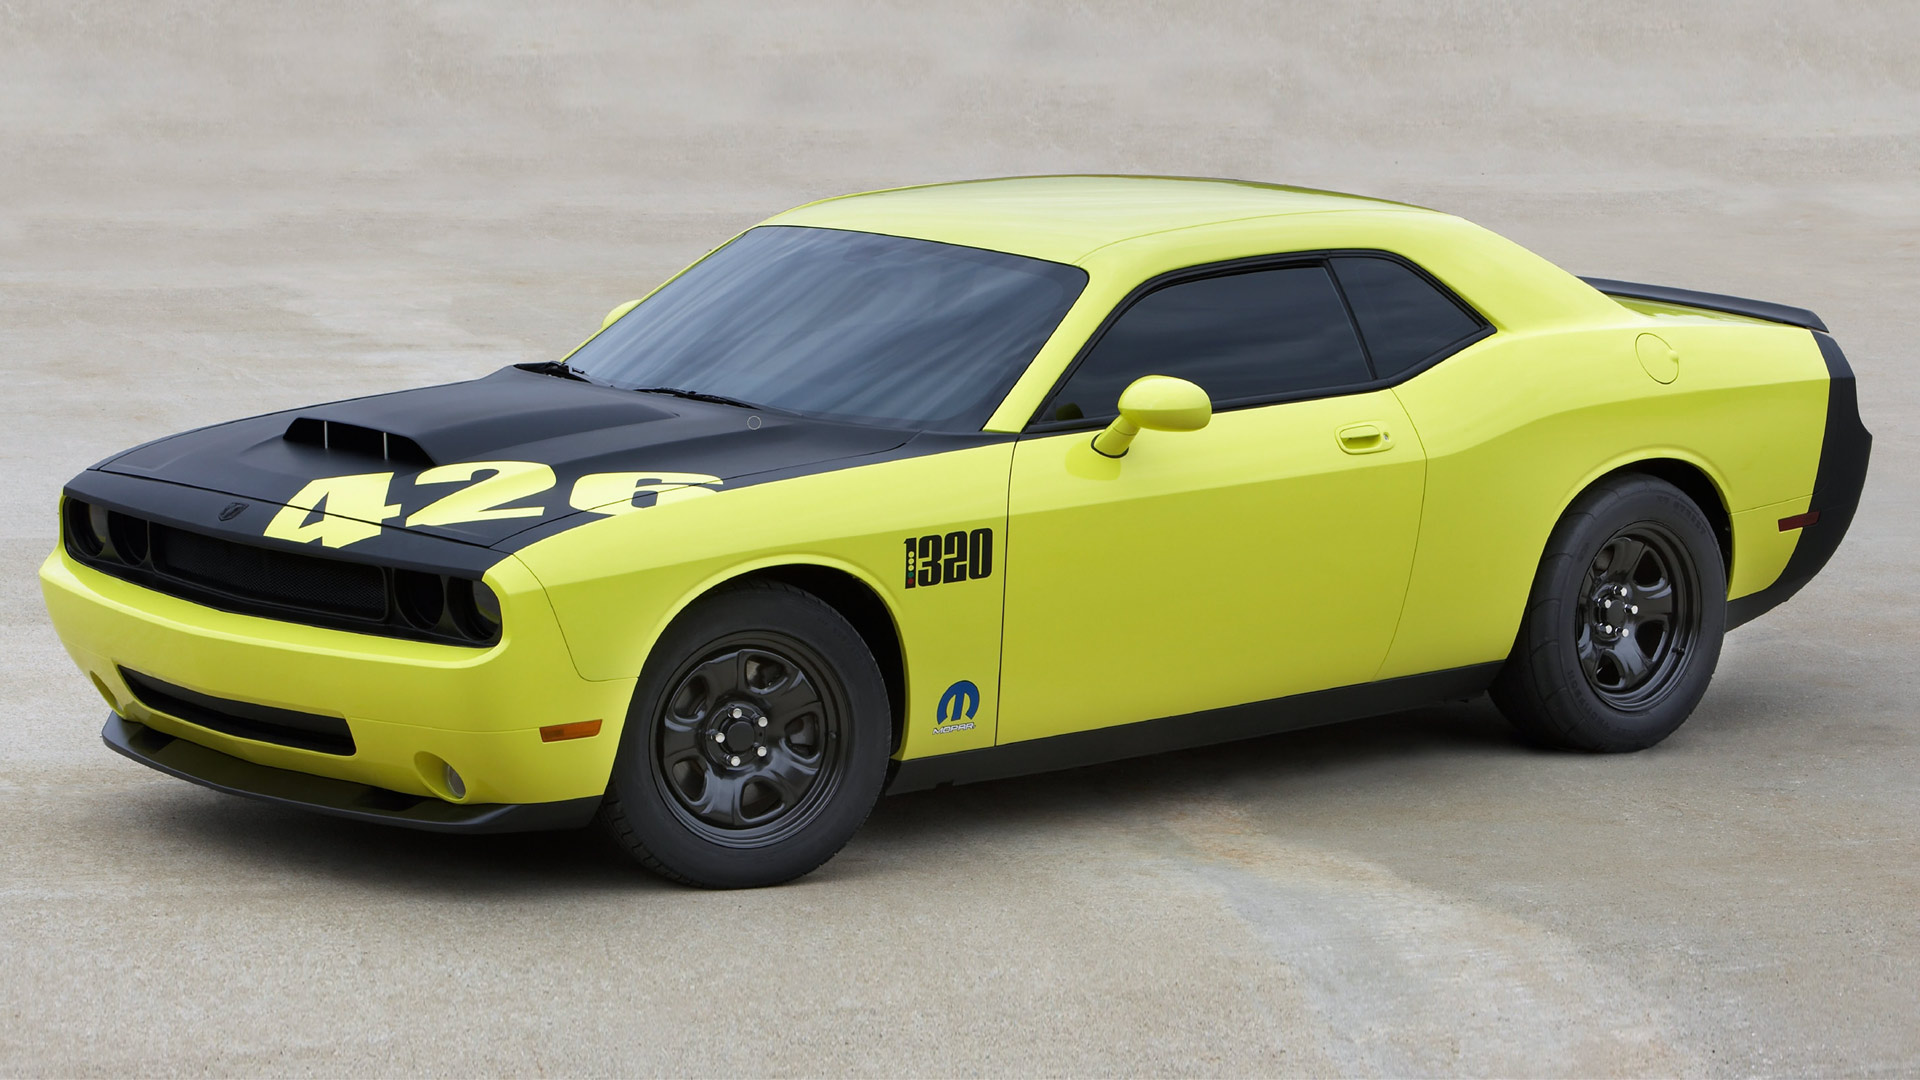 picture of Dodge Challenger, 2009, 426 Hemi, yellow/black